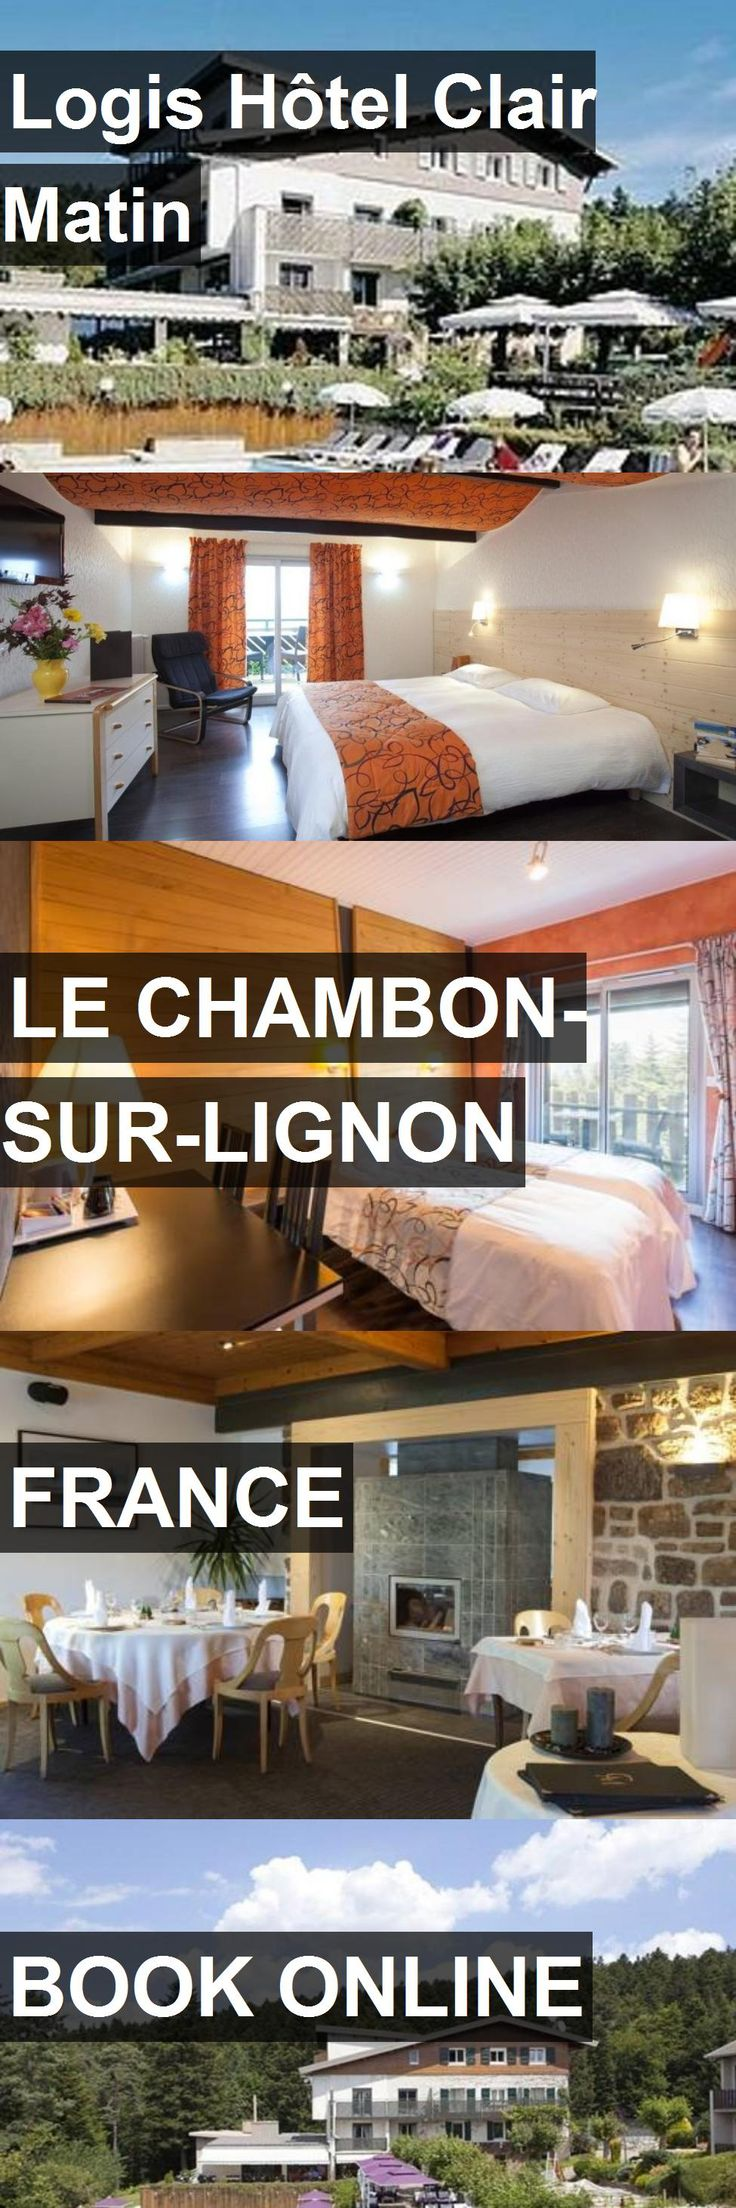 Hotel Logis Hôtel Clair Matin in Le Chambon-sur-Lignon, France. For more information, photos, reviews and best prices please follow the link. #France #LeChambon-sur-Lignon #travel #vacation #hotel